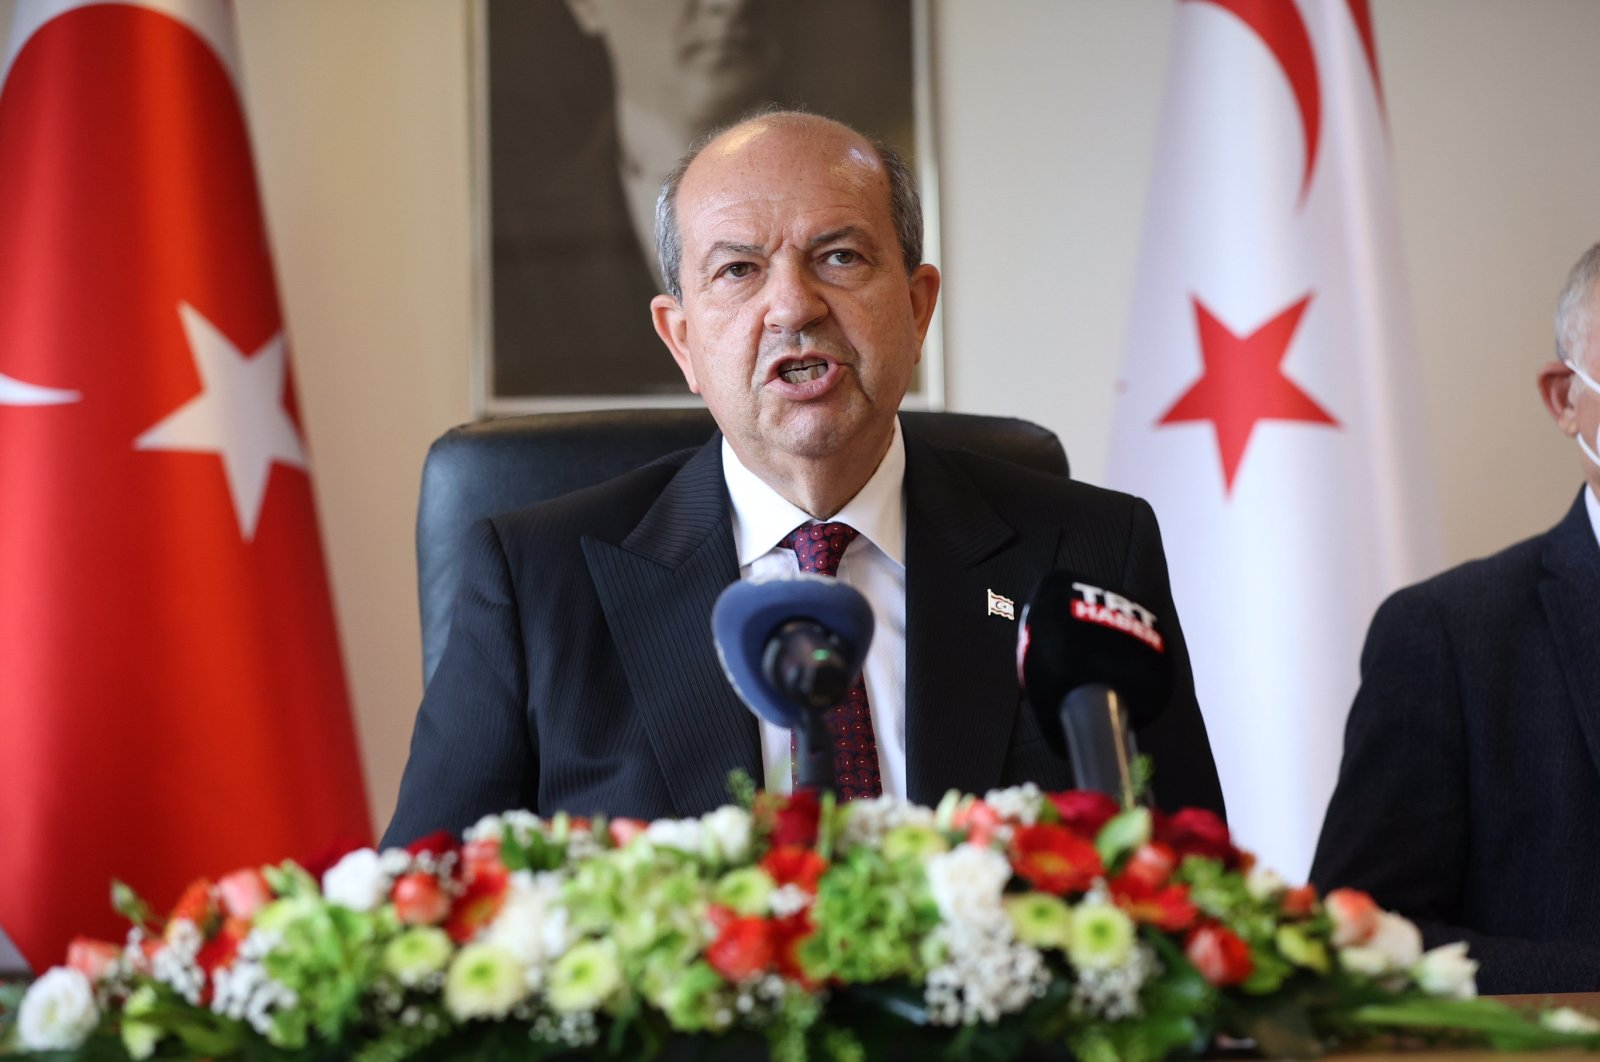 TRNC President Ersin Tatar speaks to reporters in a news conference following a meeting with U.N. Secretary-General Antonio Guterres, June 26, 2021. (AA File Photo)